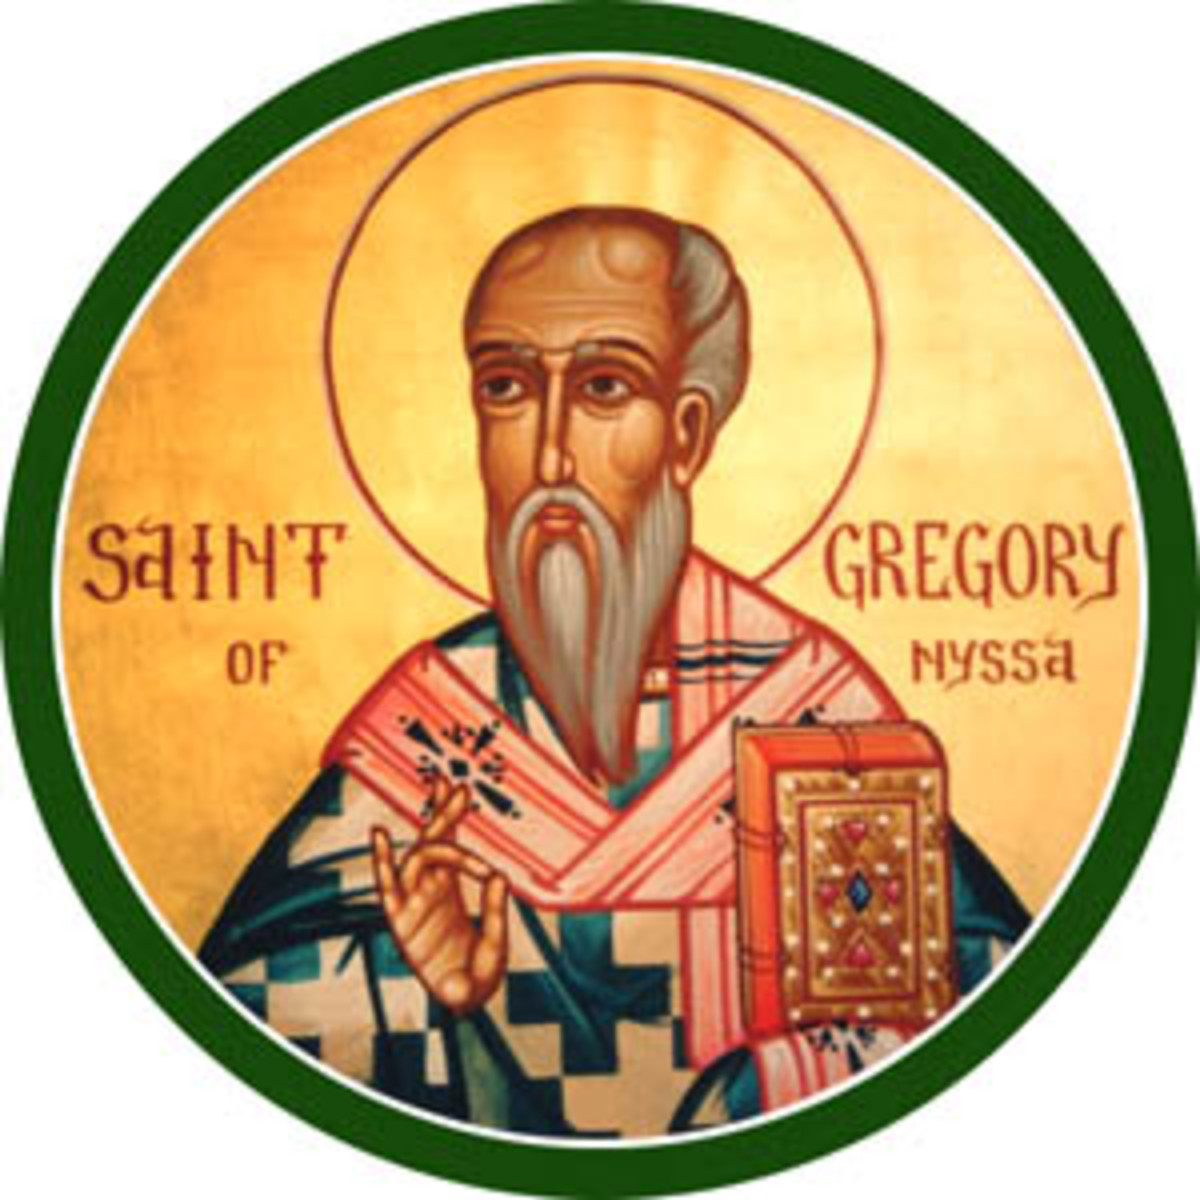 An image of St. Gregory of Nyssa